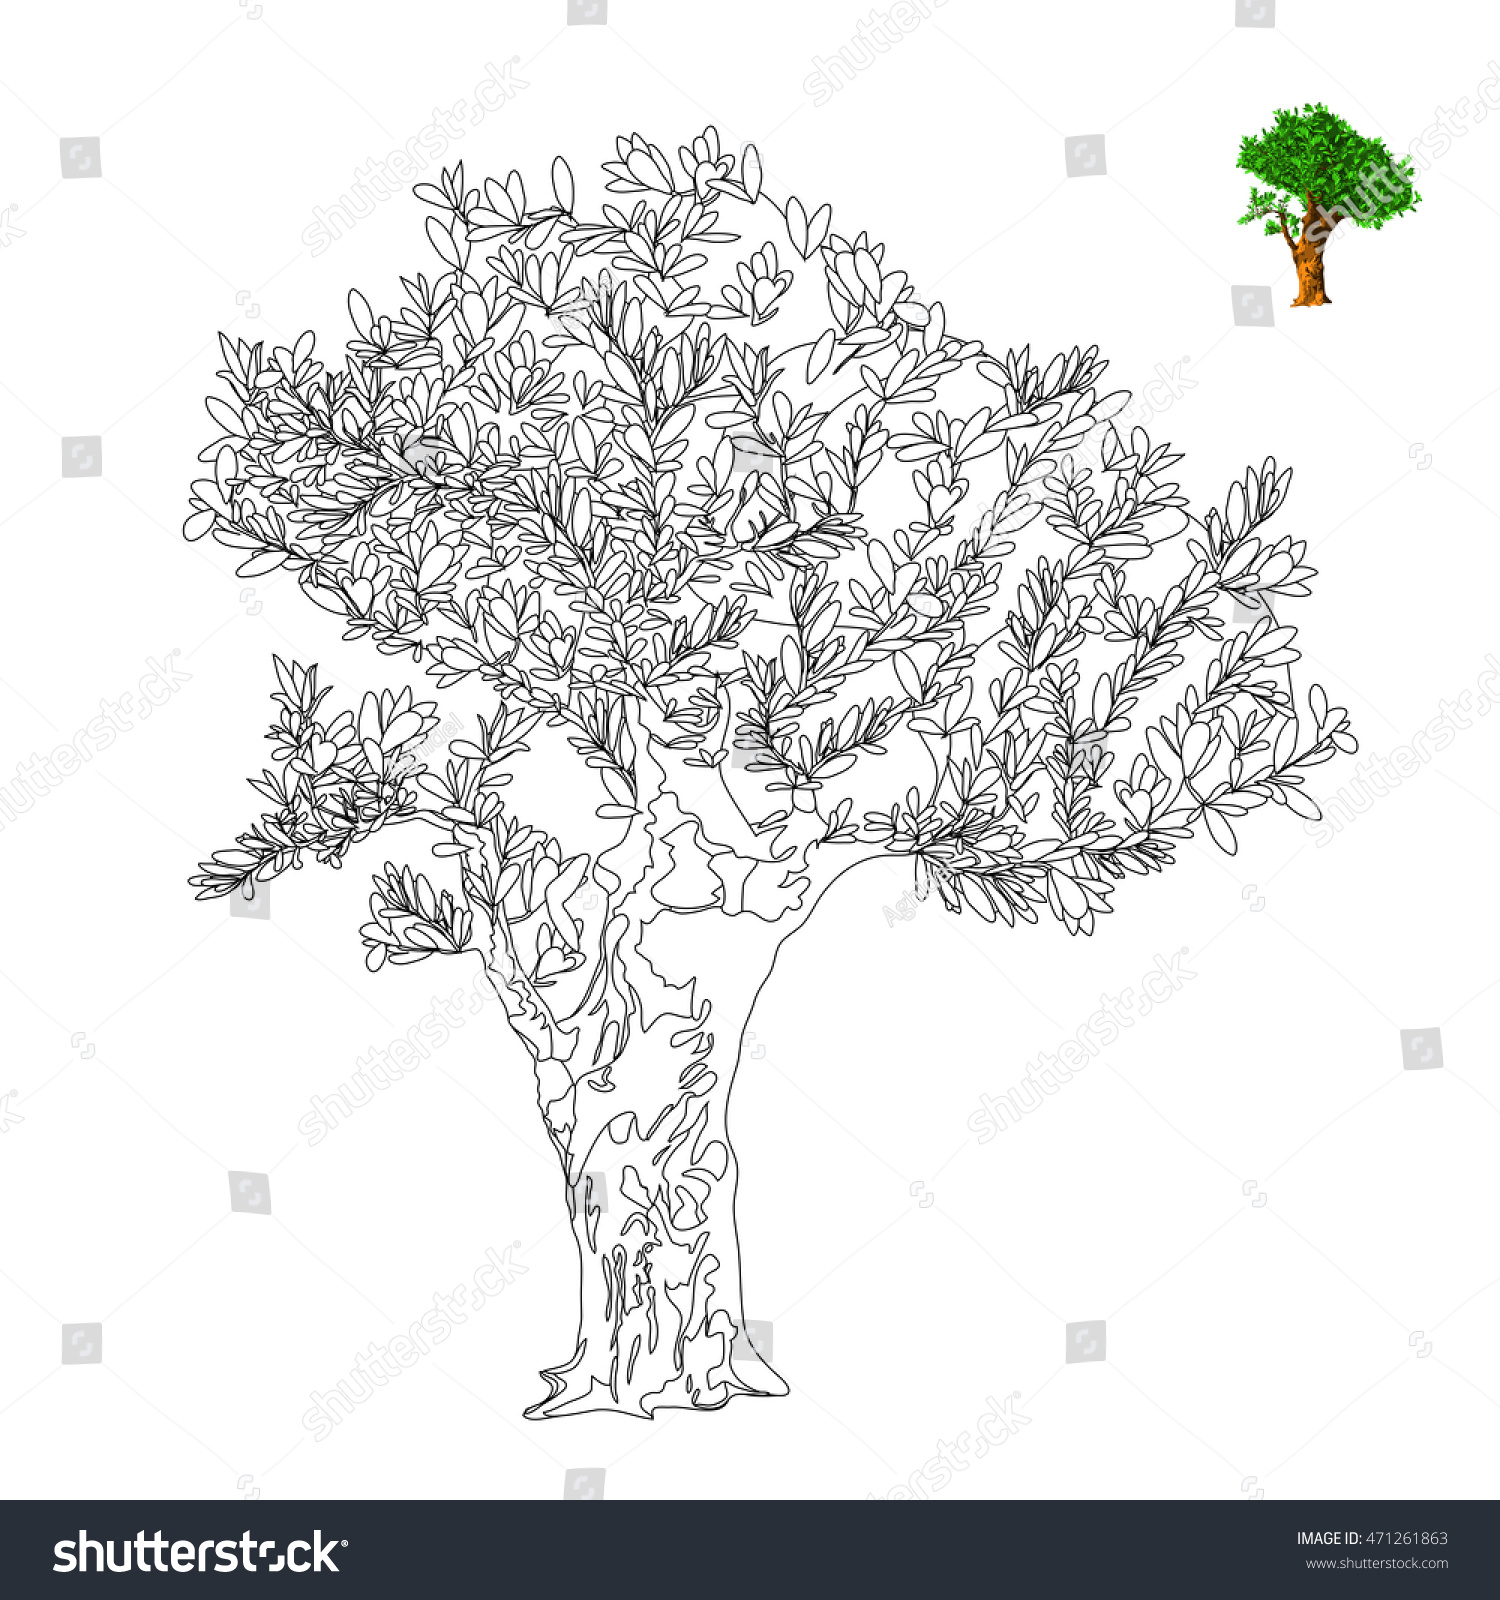 olive tree vector illustration antistress coloring page